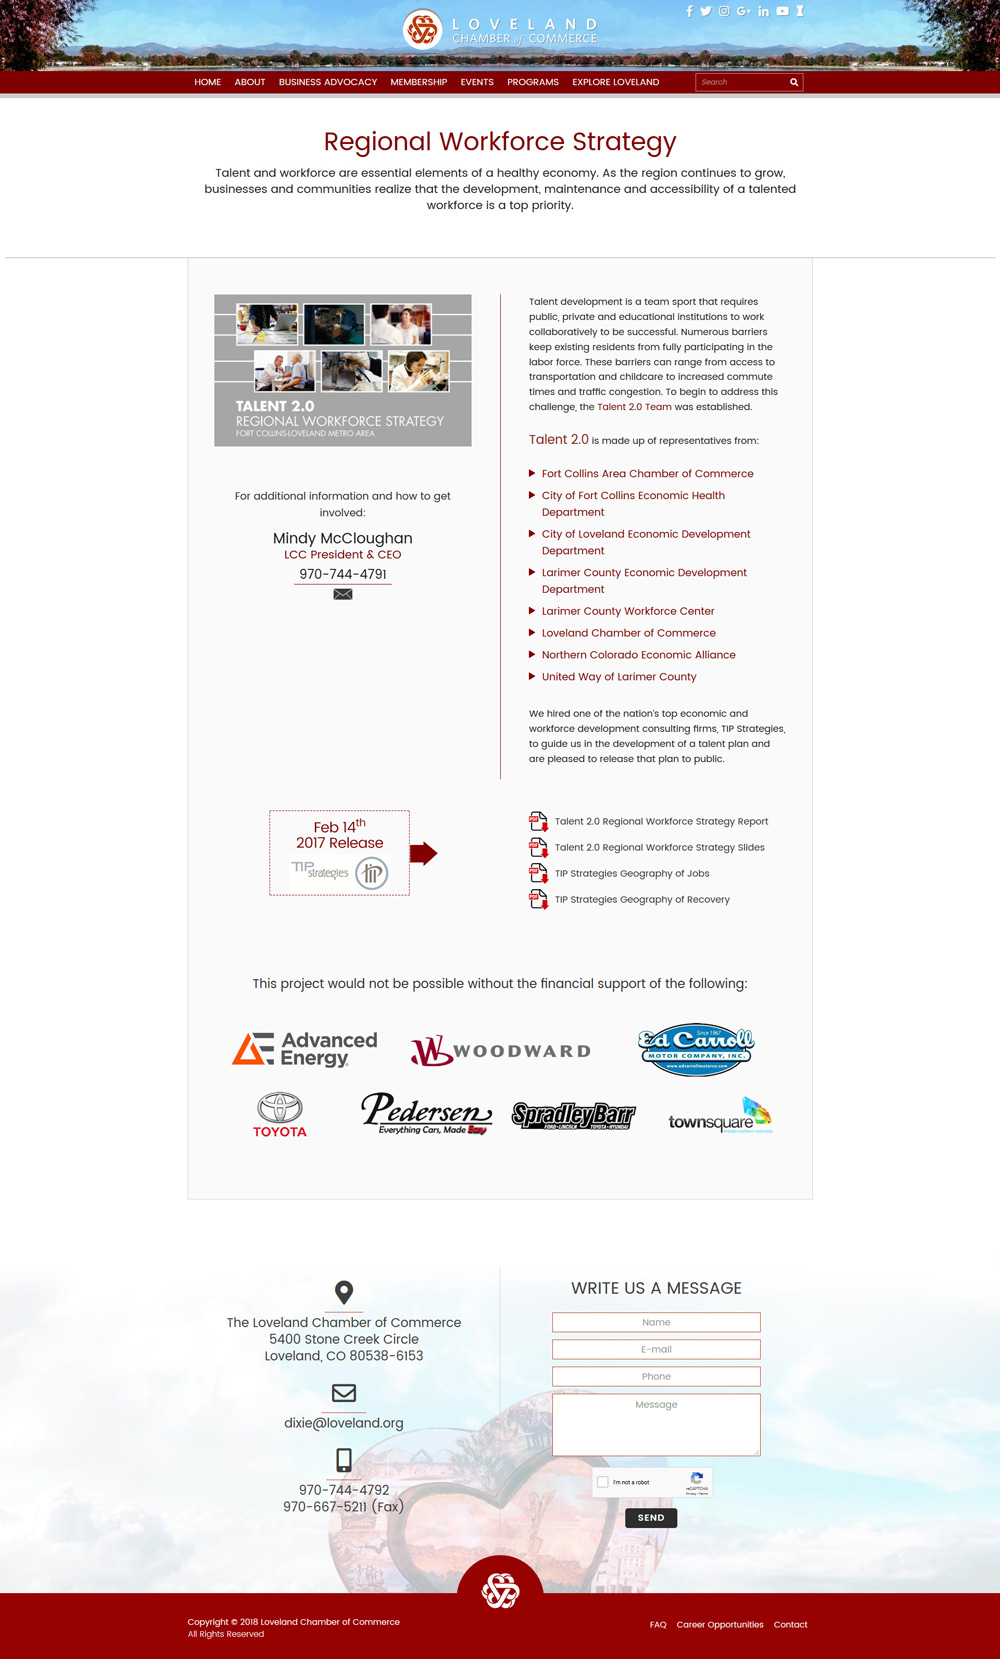 Loveland Regional Workforce Strategy Page Design